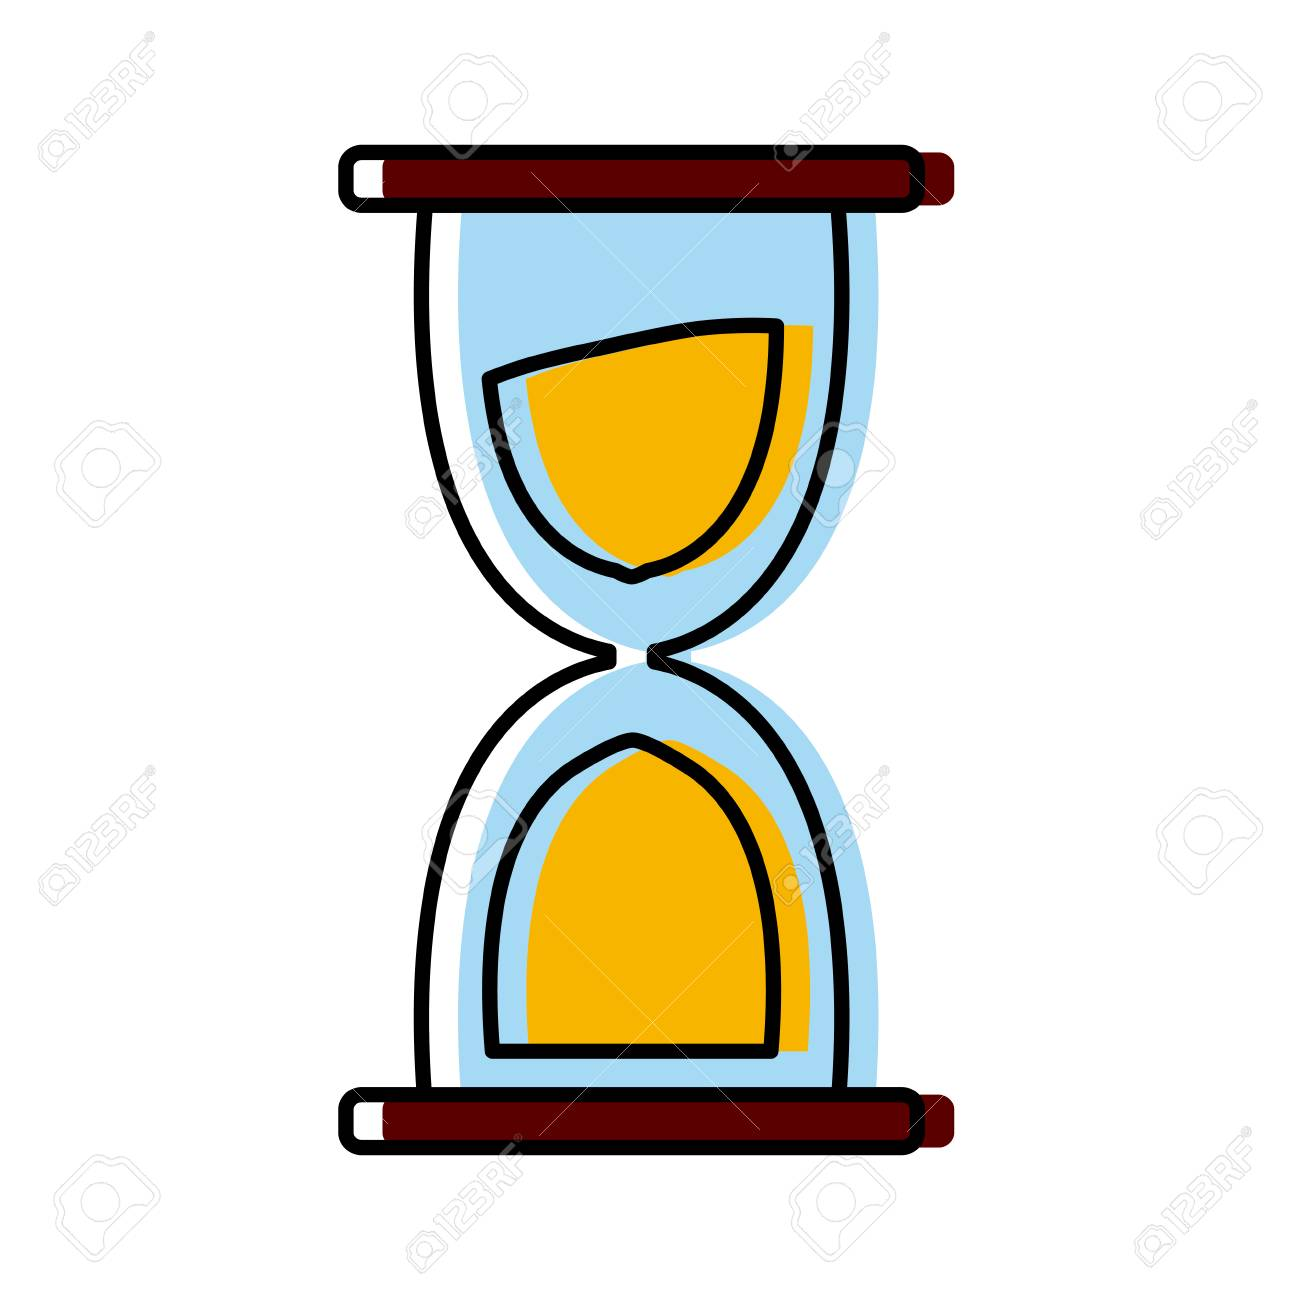 hourglass sand timer icon clip art design illustration royalty free rh 123rf com hourglass shape clipart hourglass shape clipart